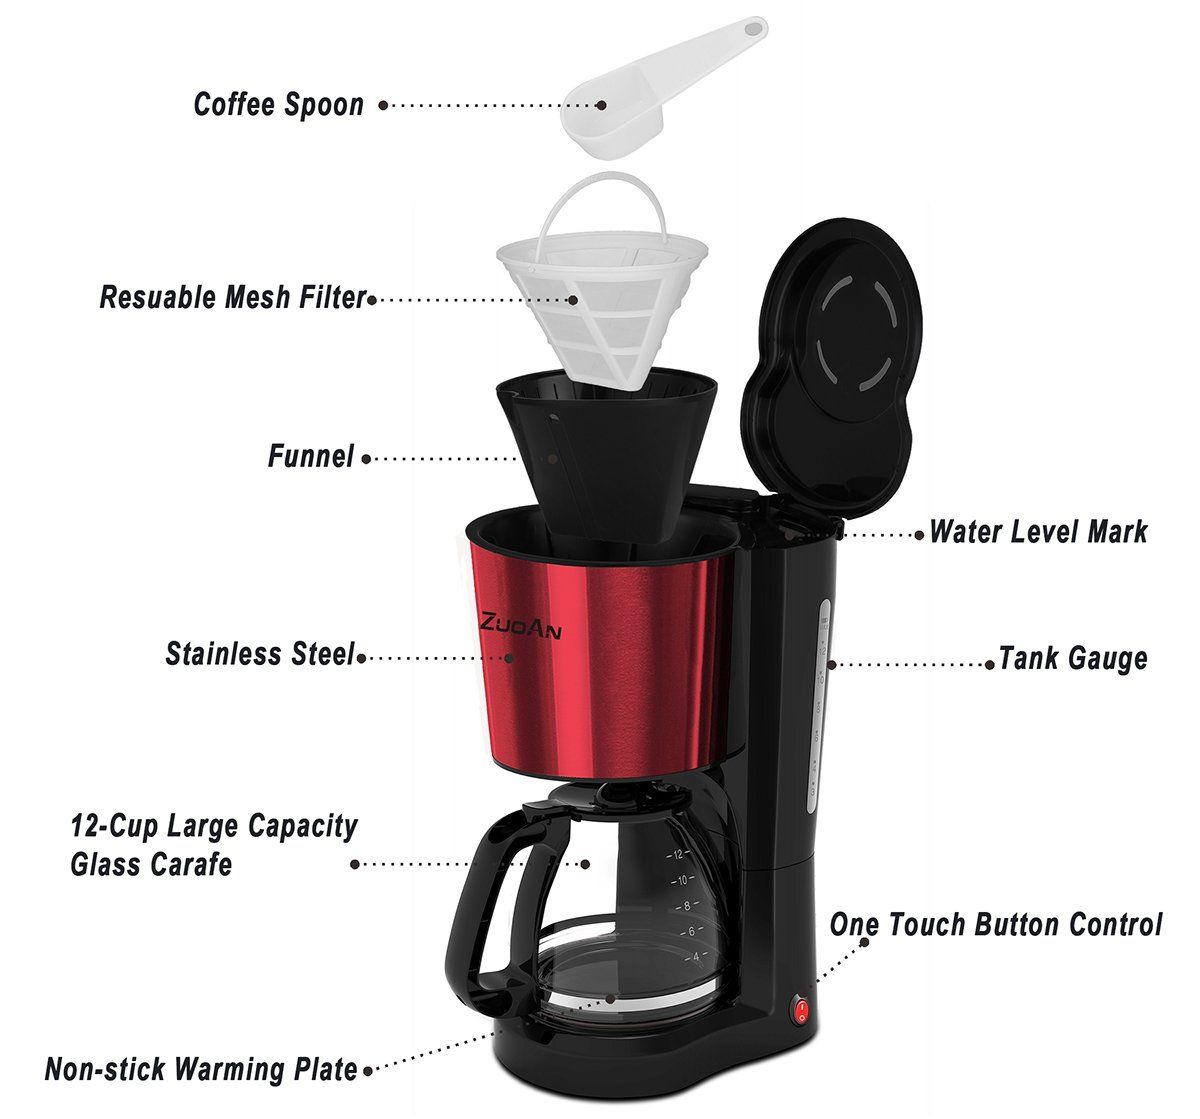 Coffee makerzuoan cup drip coffeemaker with glass coffee pot and